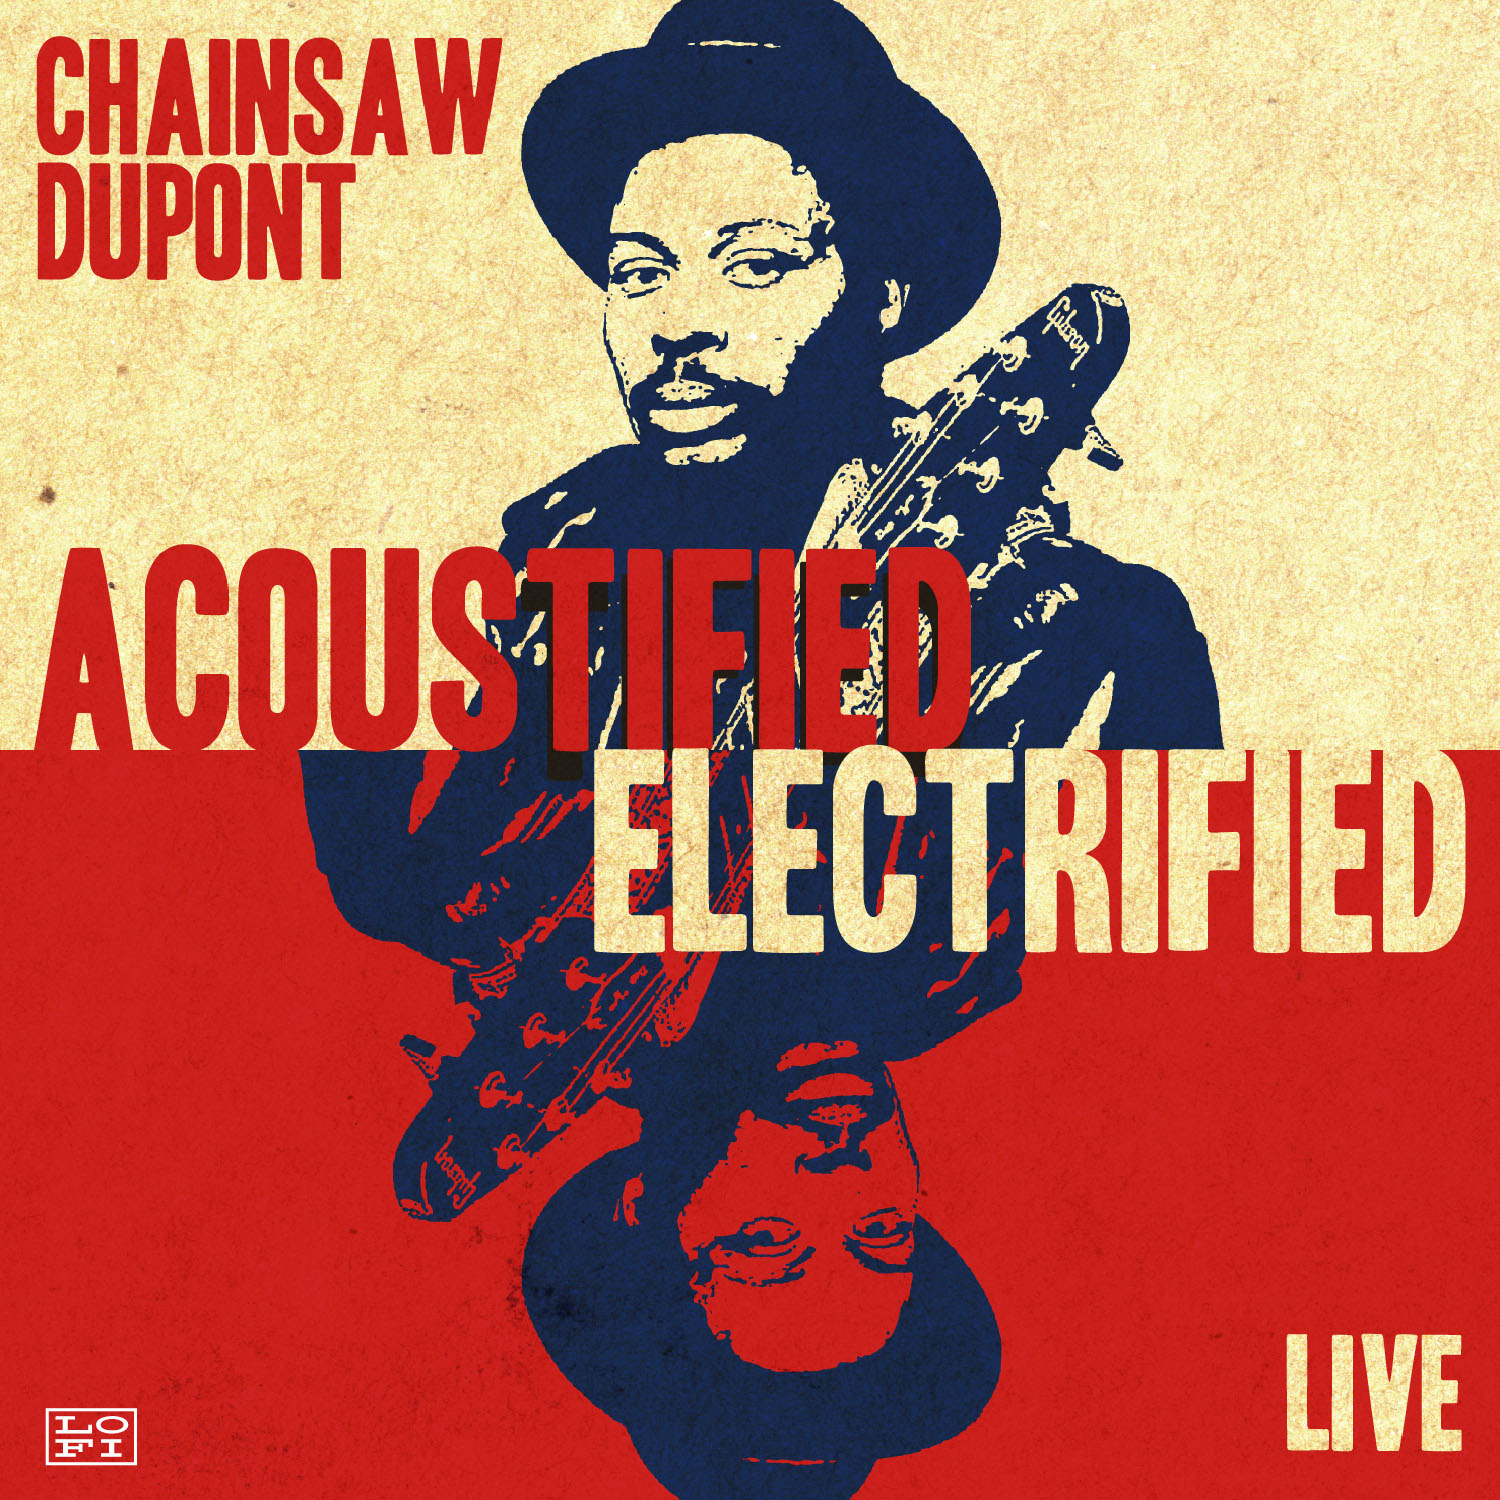 """1-sheets: """"Acoustified / Electrified"""", Chainsaw Dupont"""